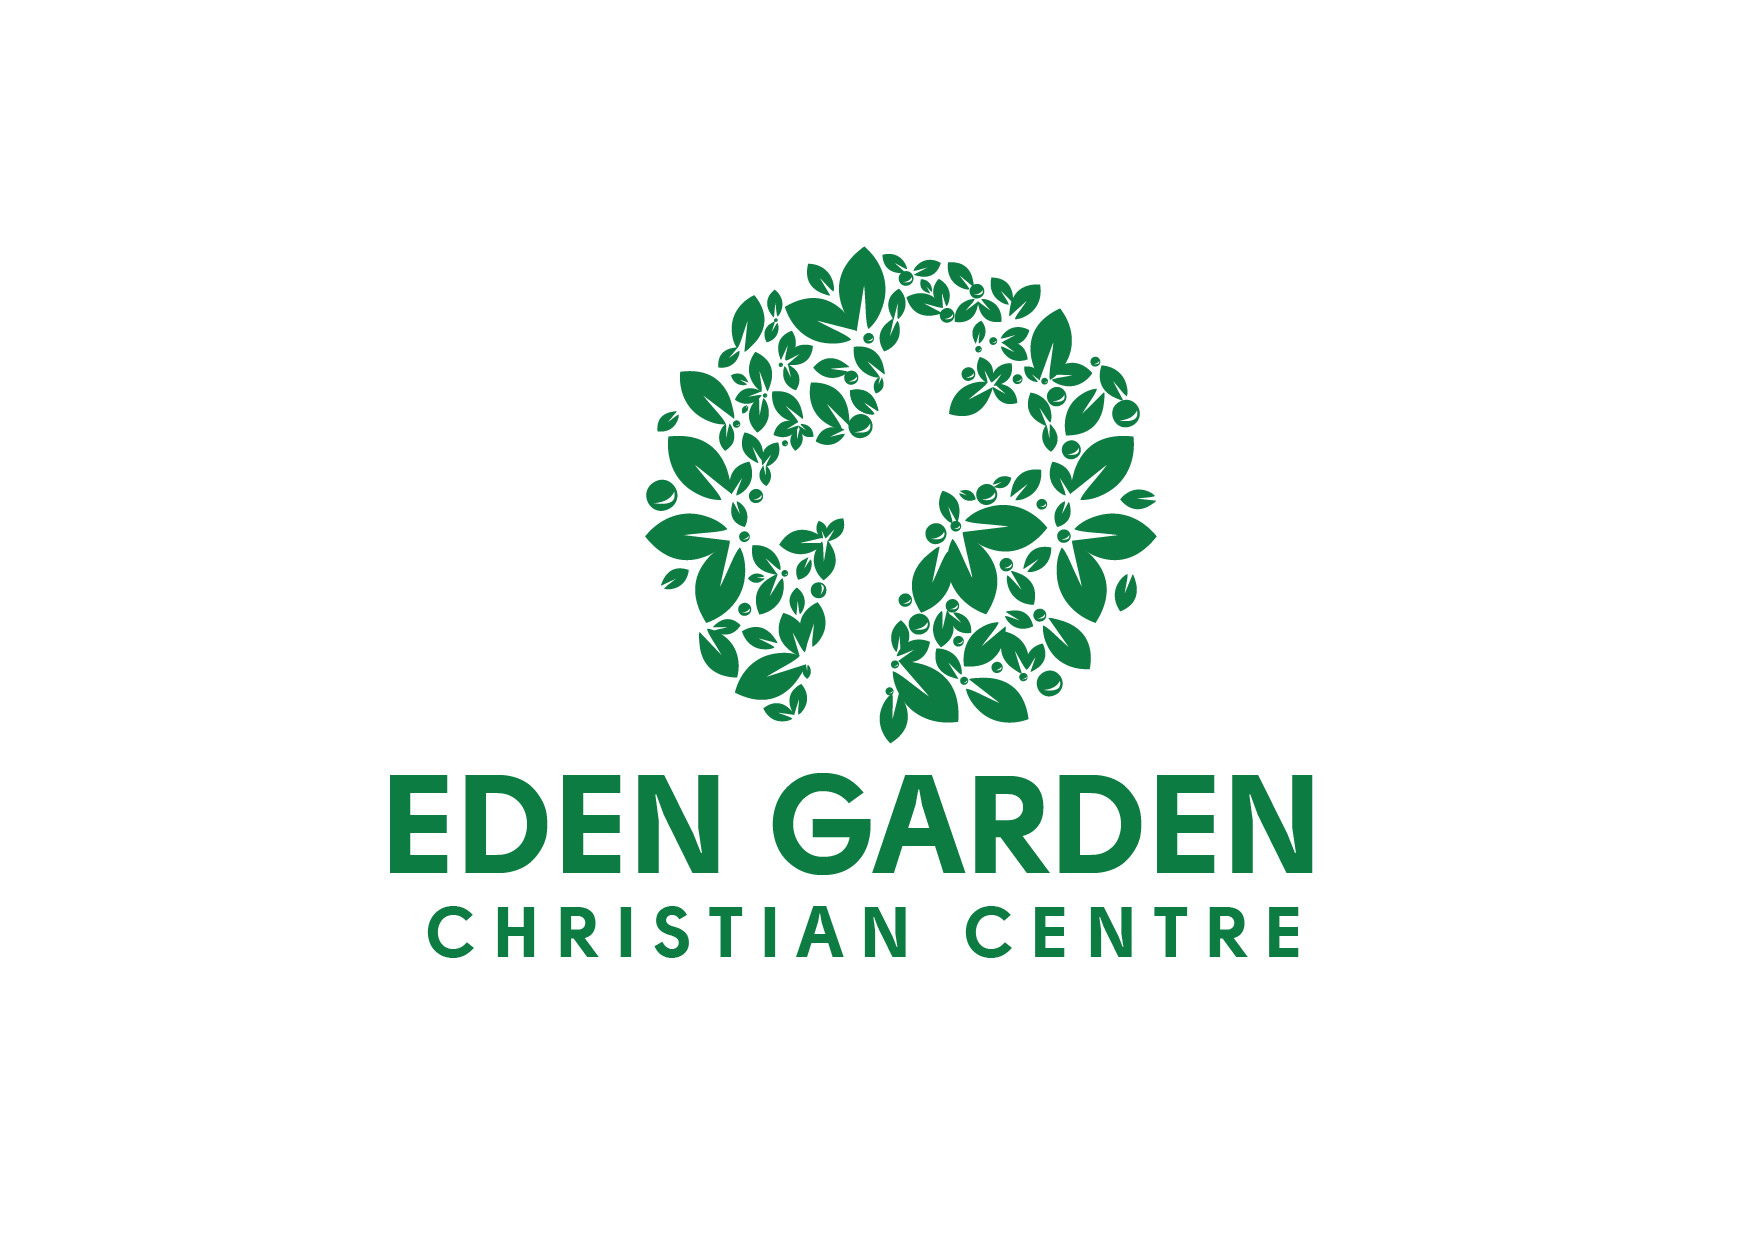 Eden Garden Christian Centre of Louisville, KY